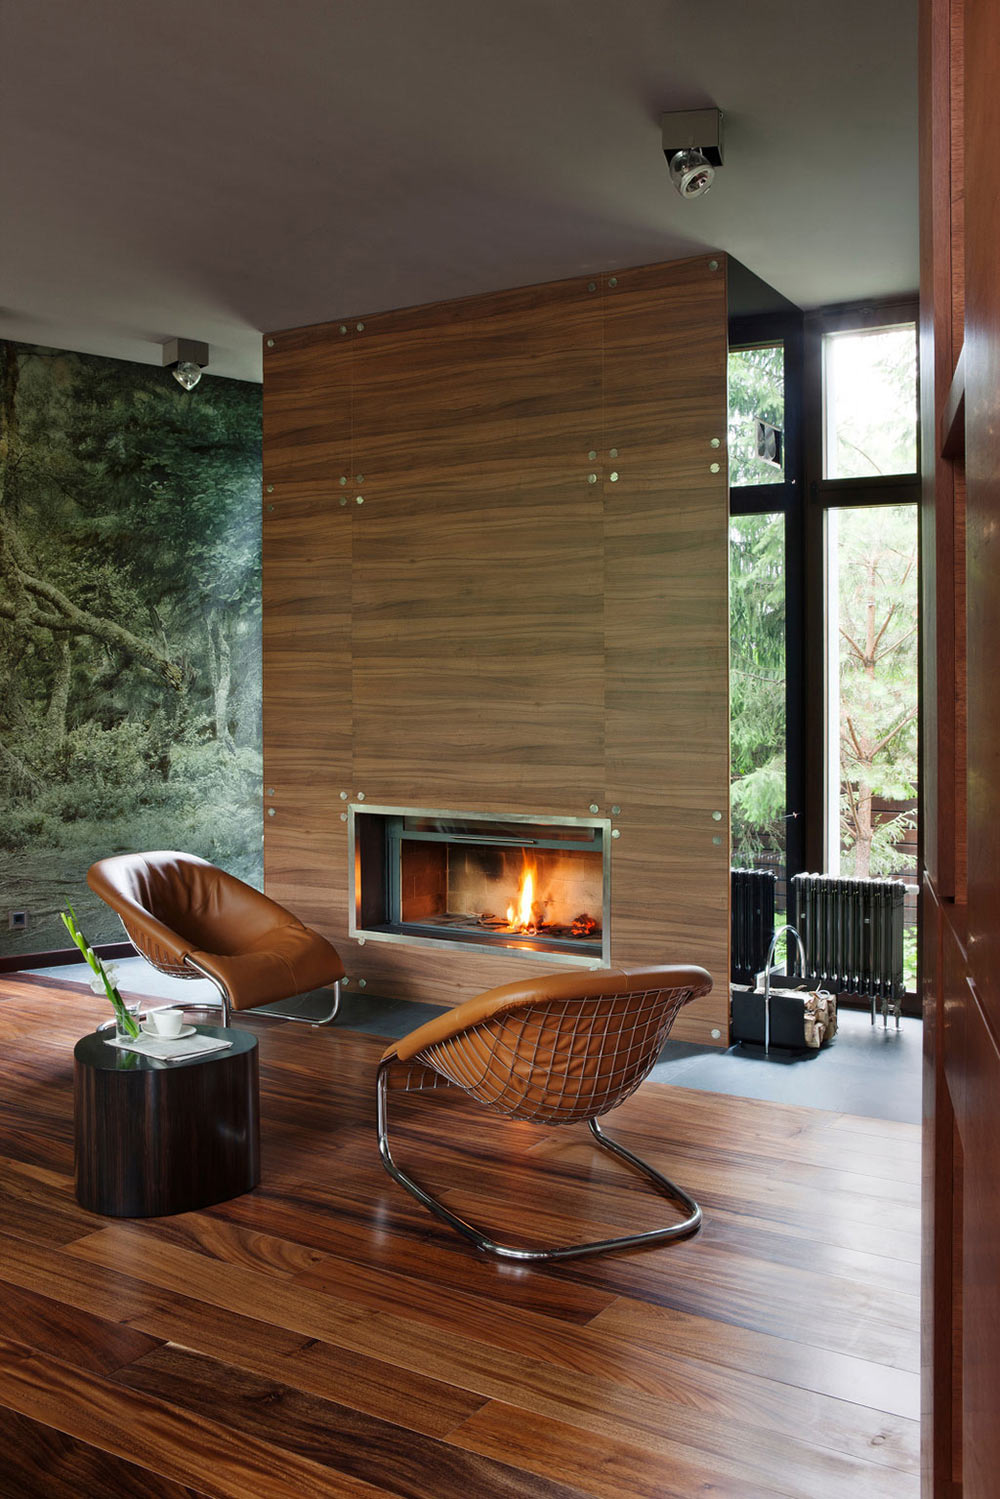 Fireplace, Chairs, Sophisticated House Near Moscow by Olga Freiman